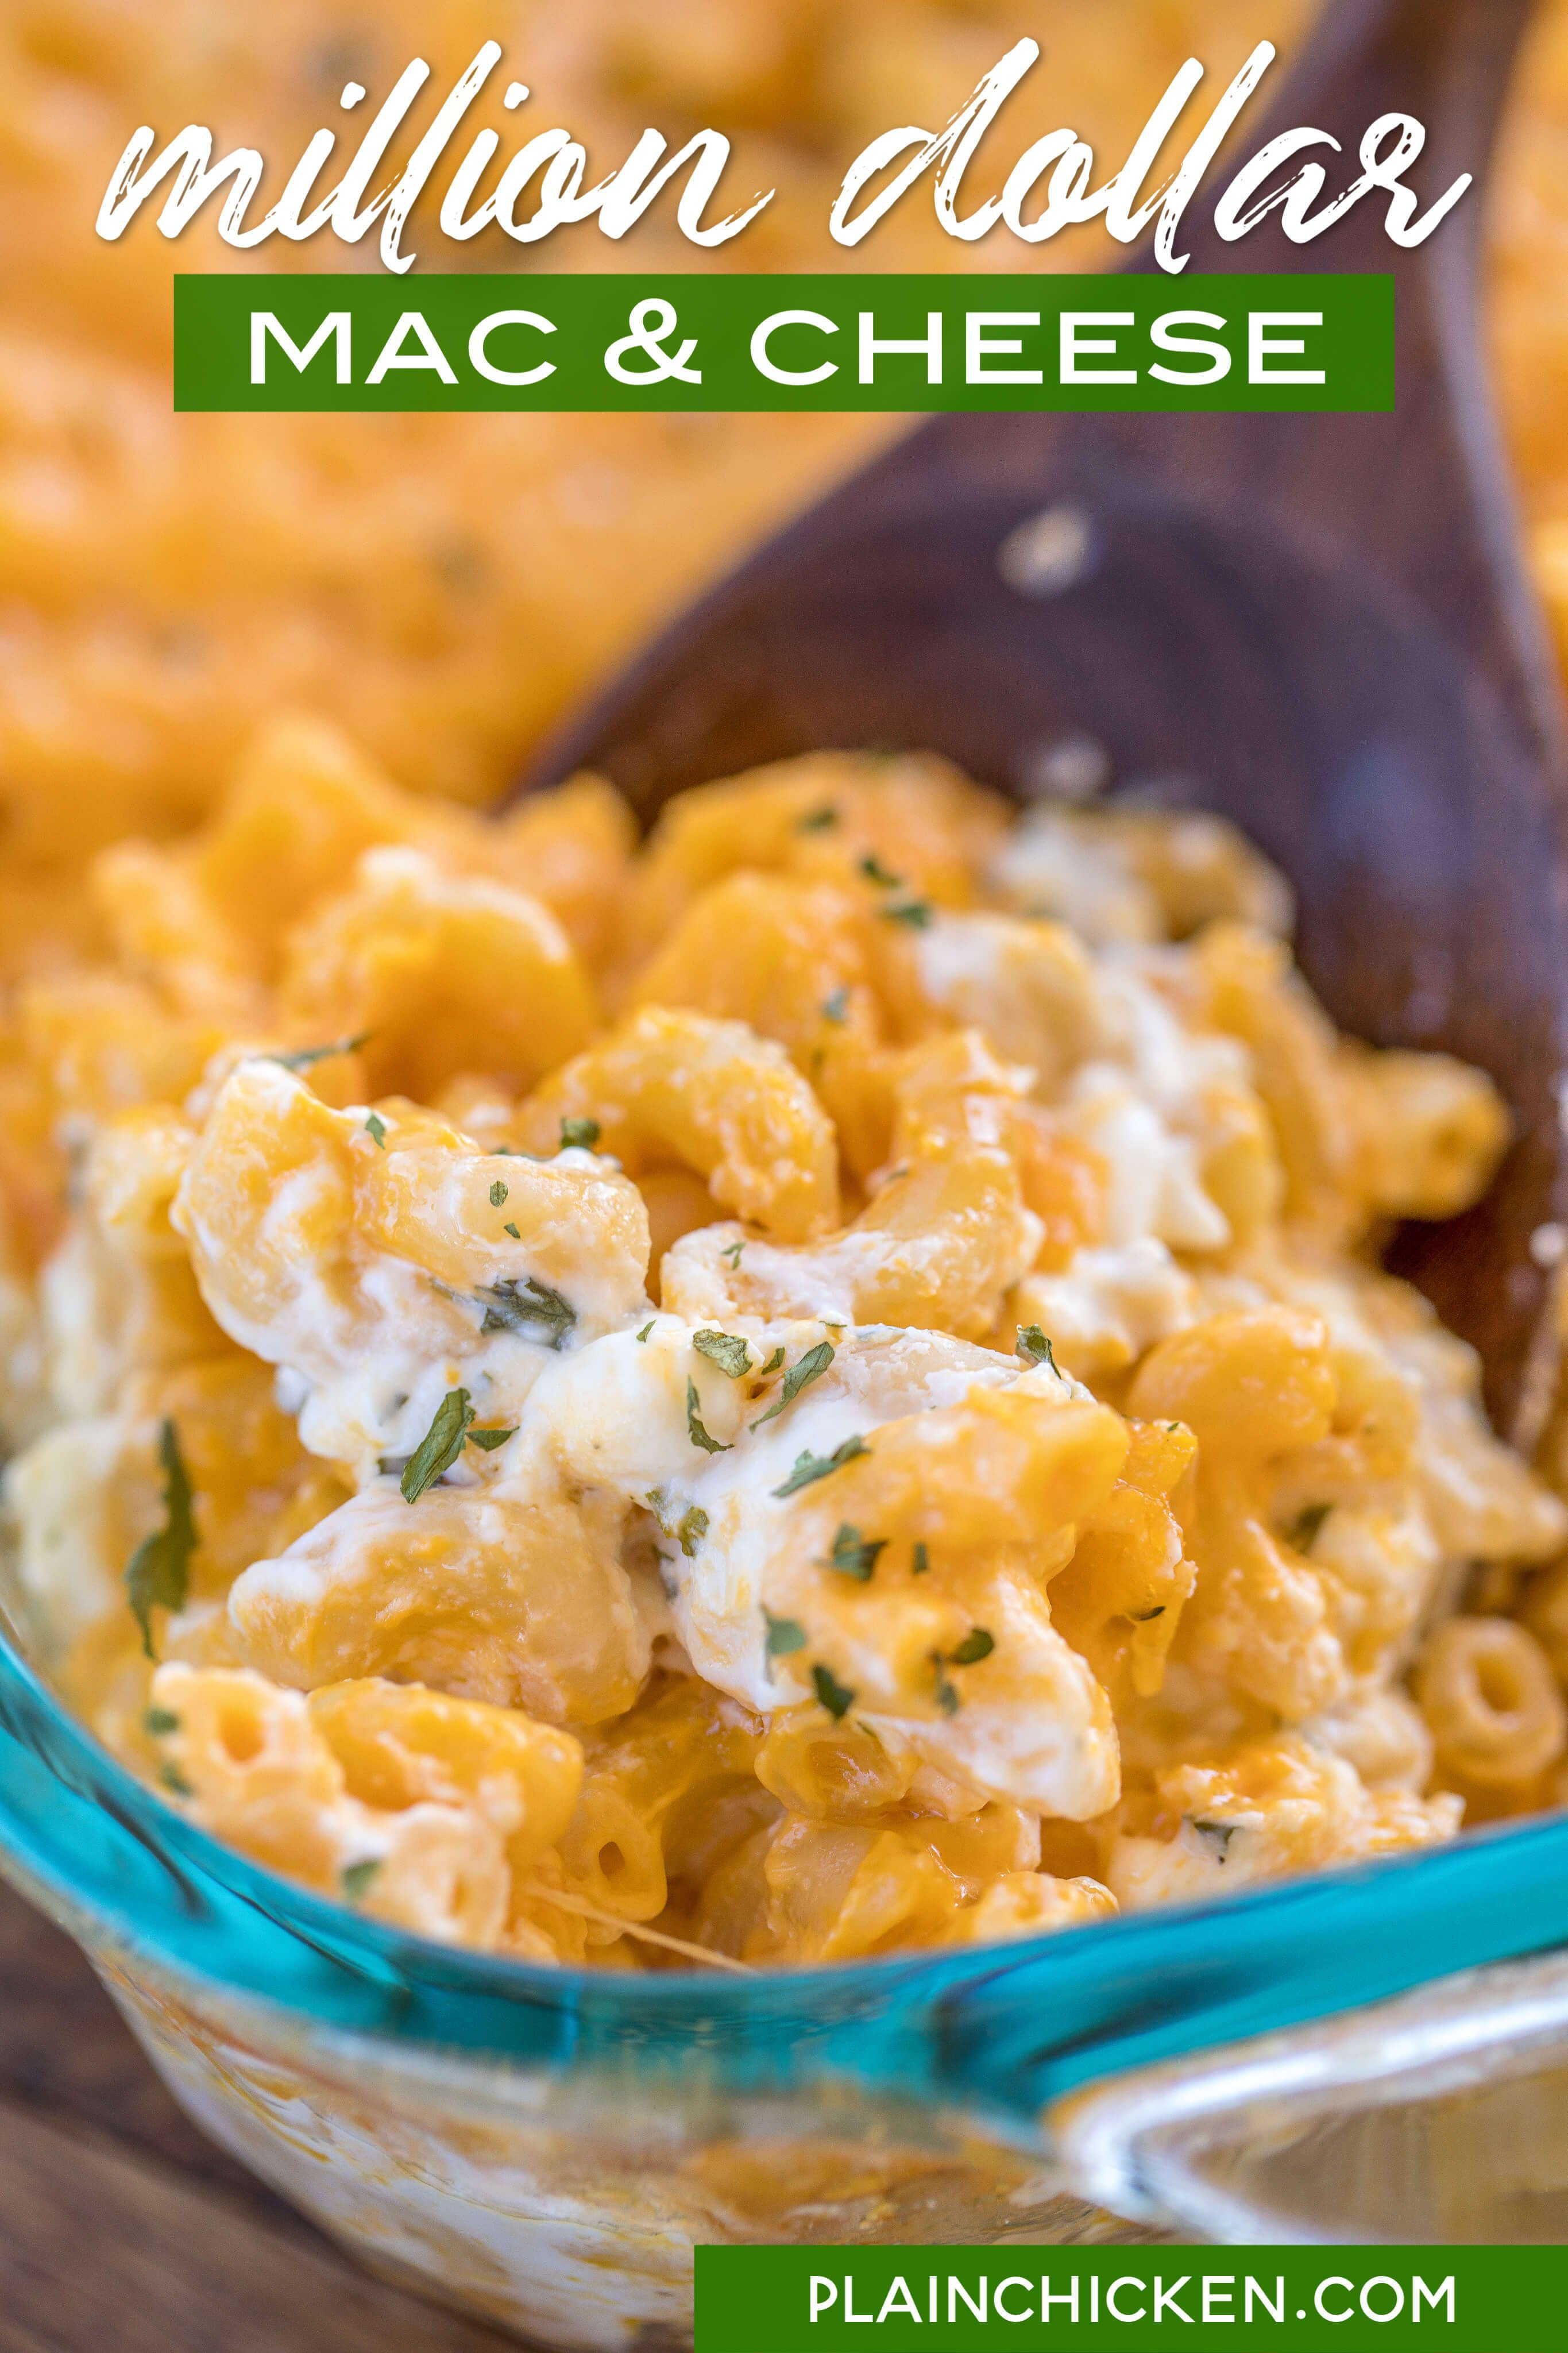 Million Dollar Mac Cheese In 2020 Mac And Cheese Recipes Cheese